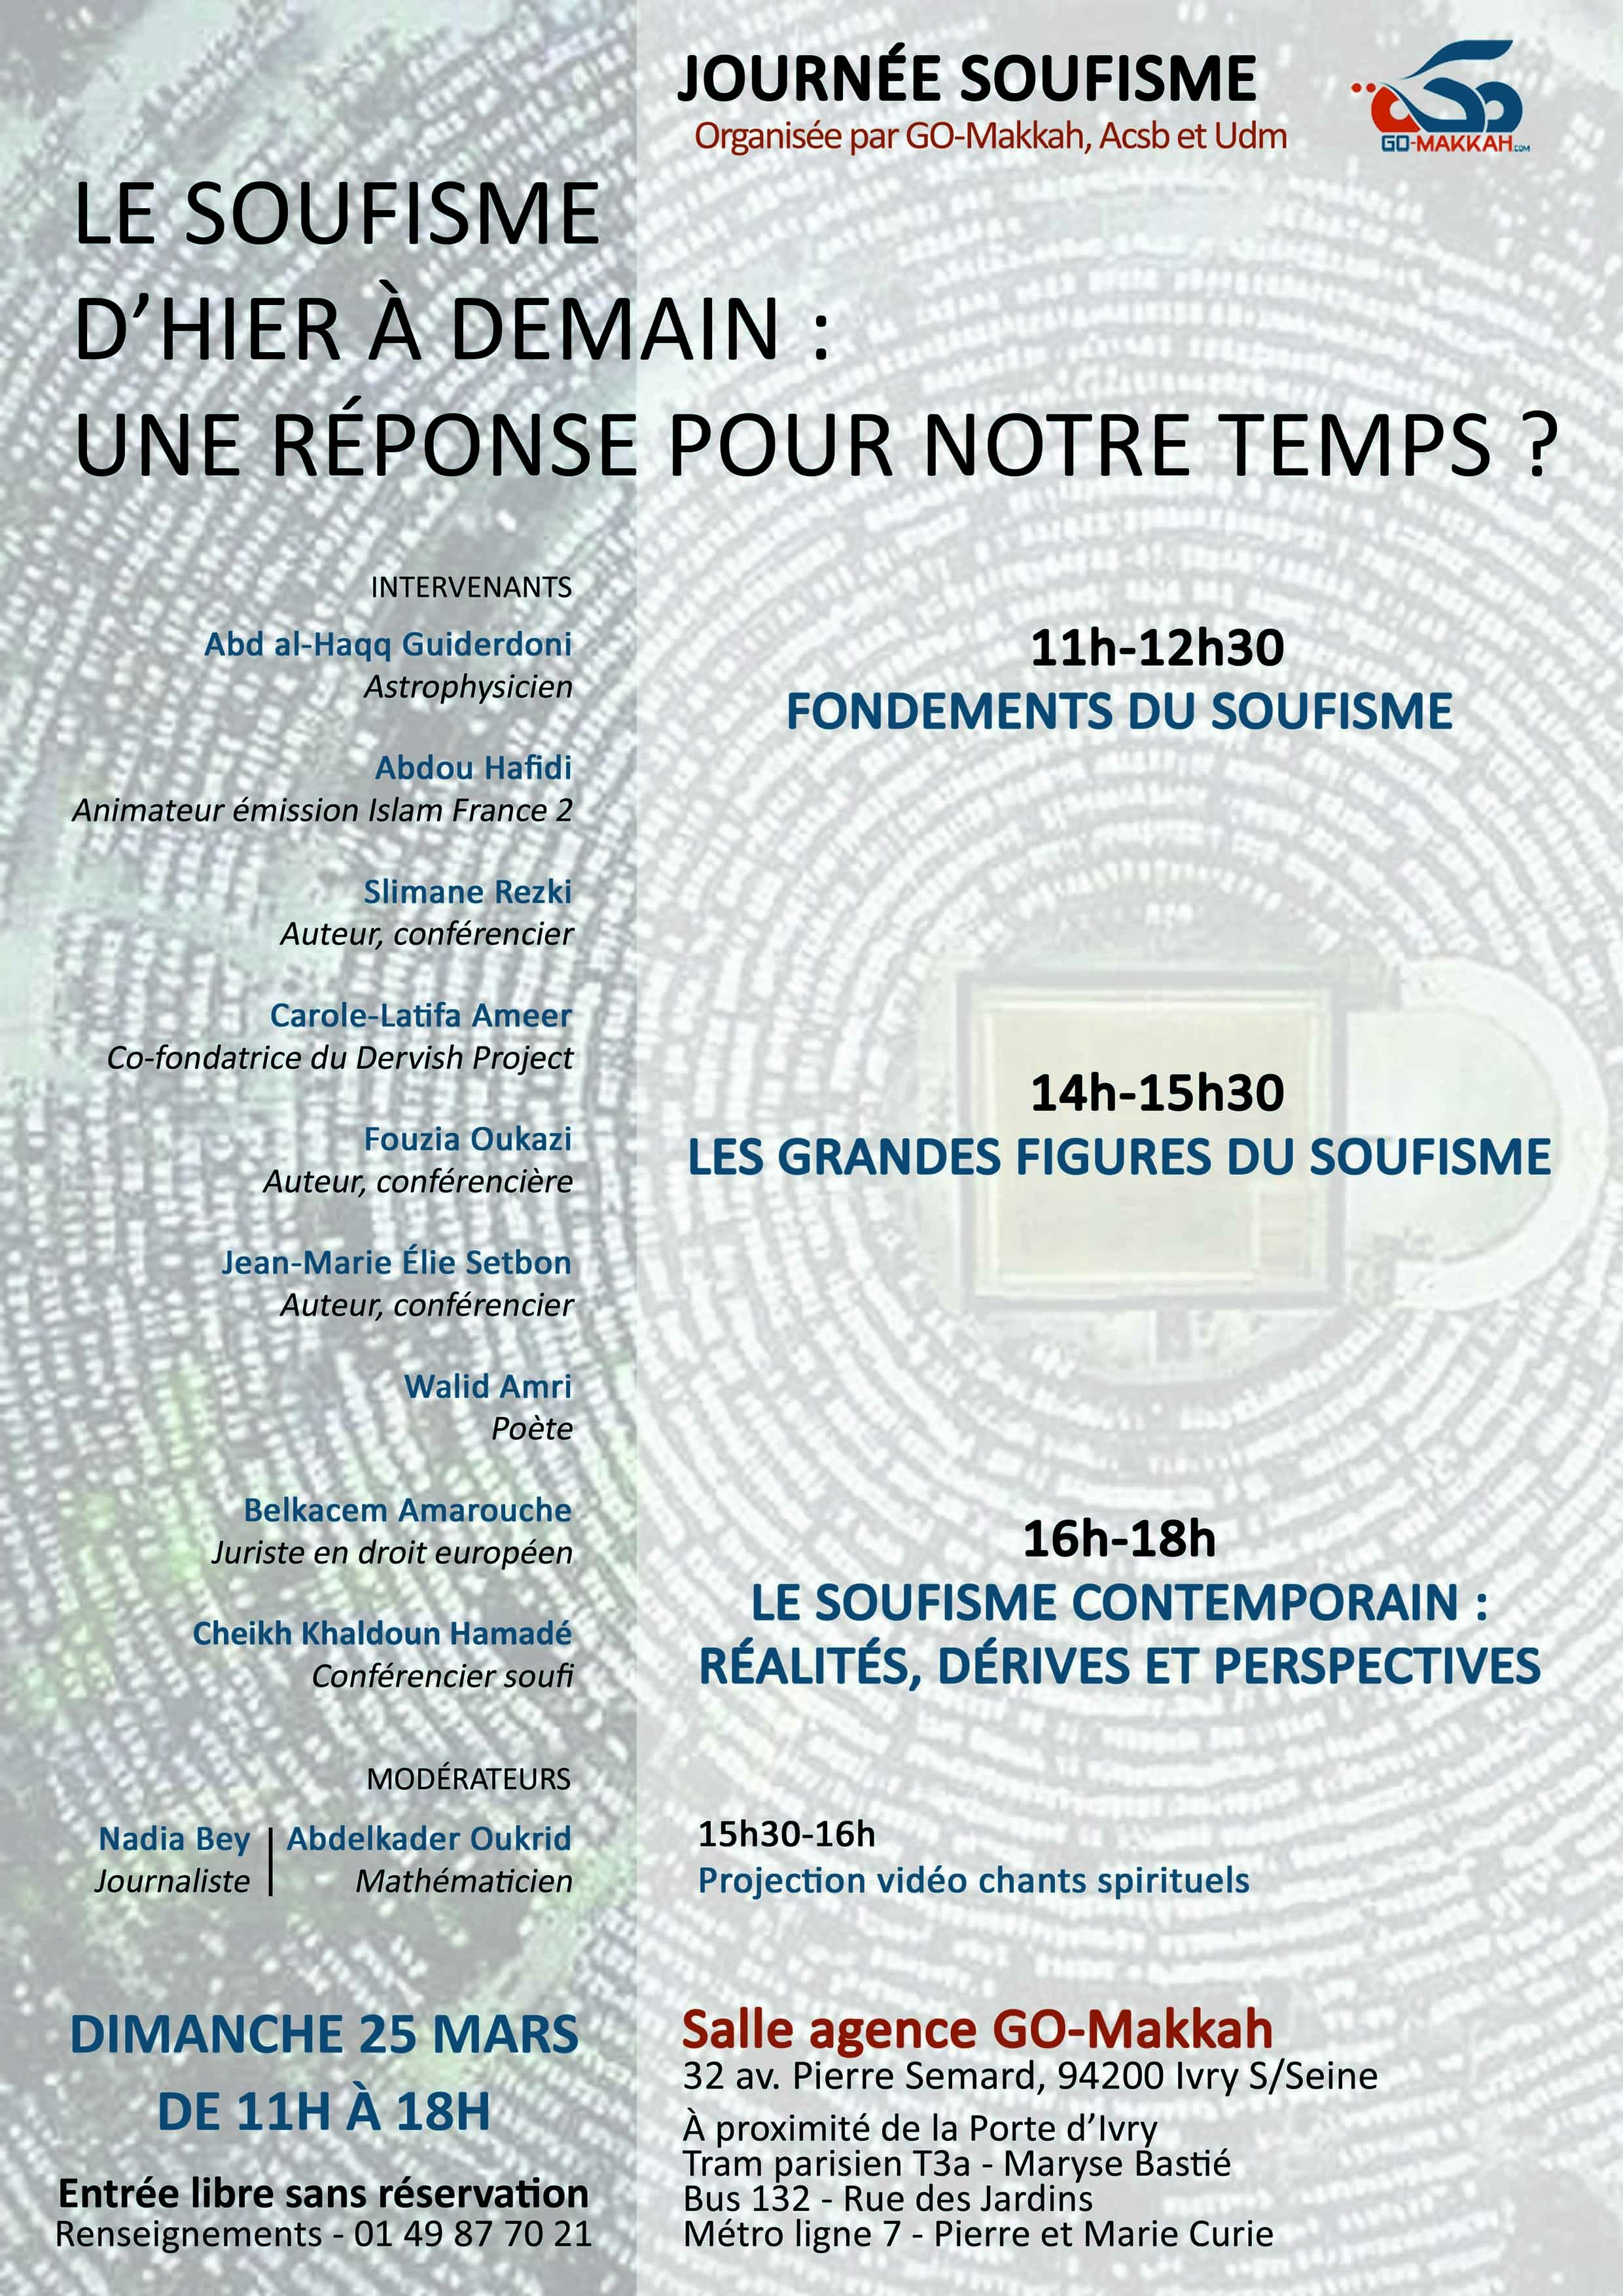 https://www.saphirnews.com/agenda/Journee-Decouverte-du-soufisme_ae574113.html